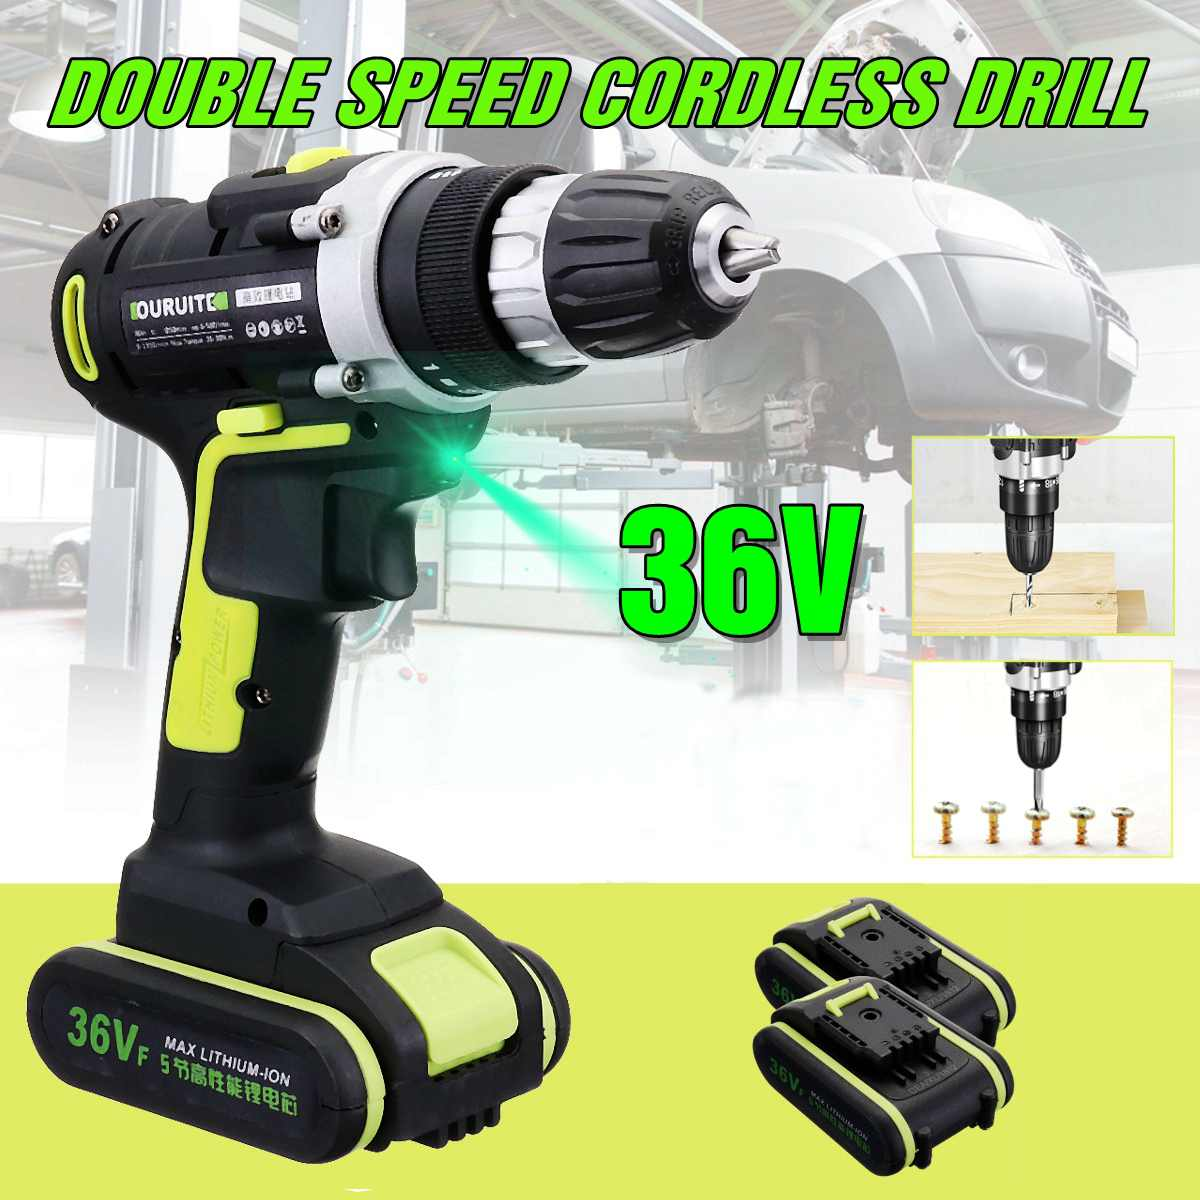 36V Professional Cordless Rechargeable Wireless Electric Screwdriver Cordless Drill Hammer Drill 0.8-10mm Chuck 2 Li-ion Battery